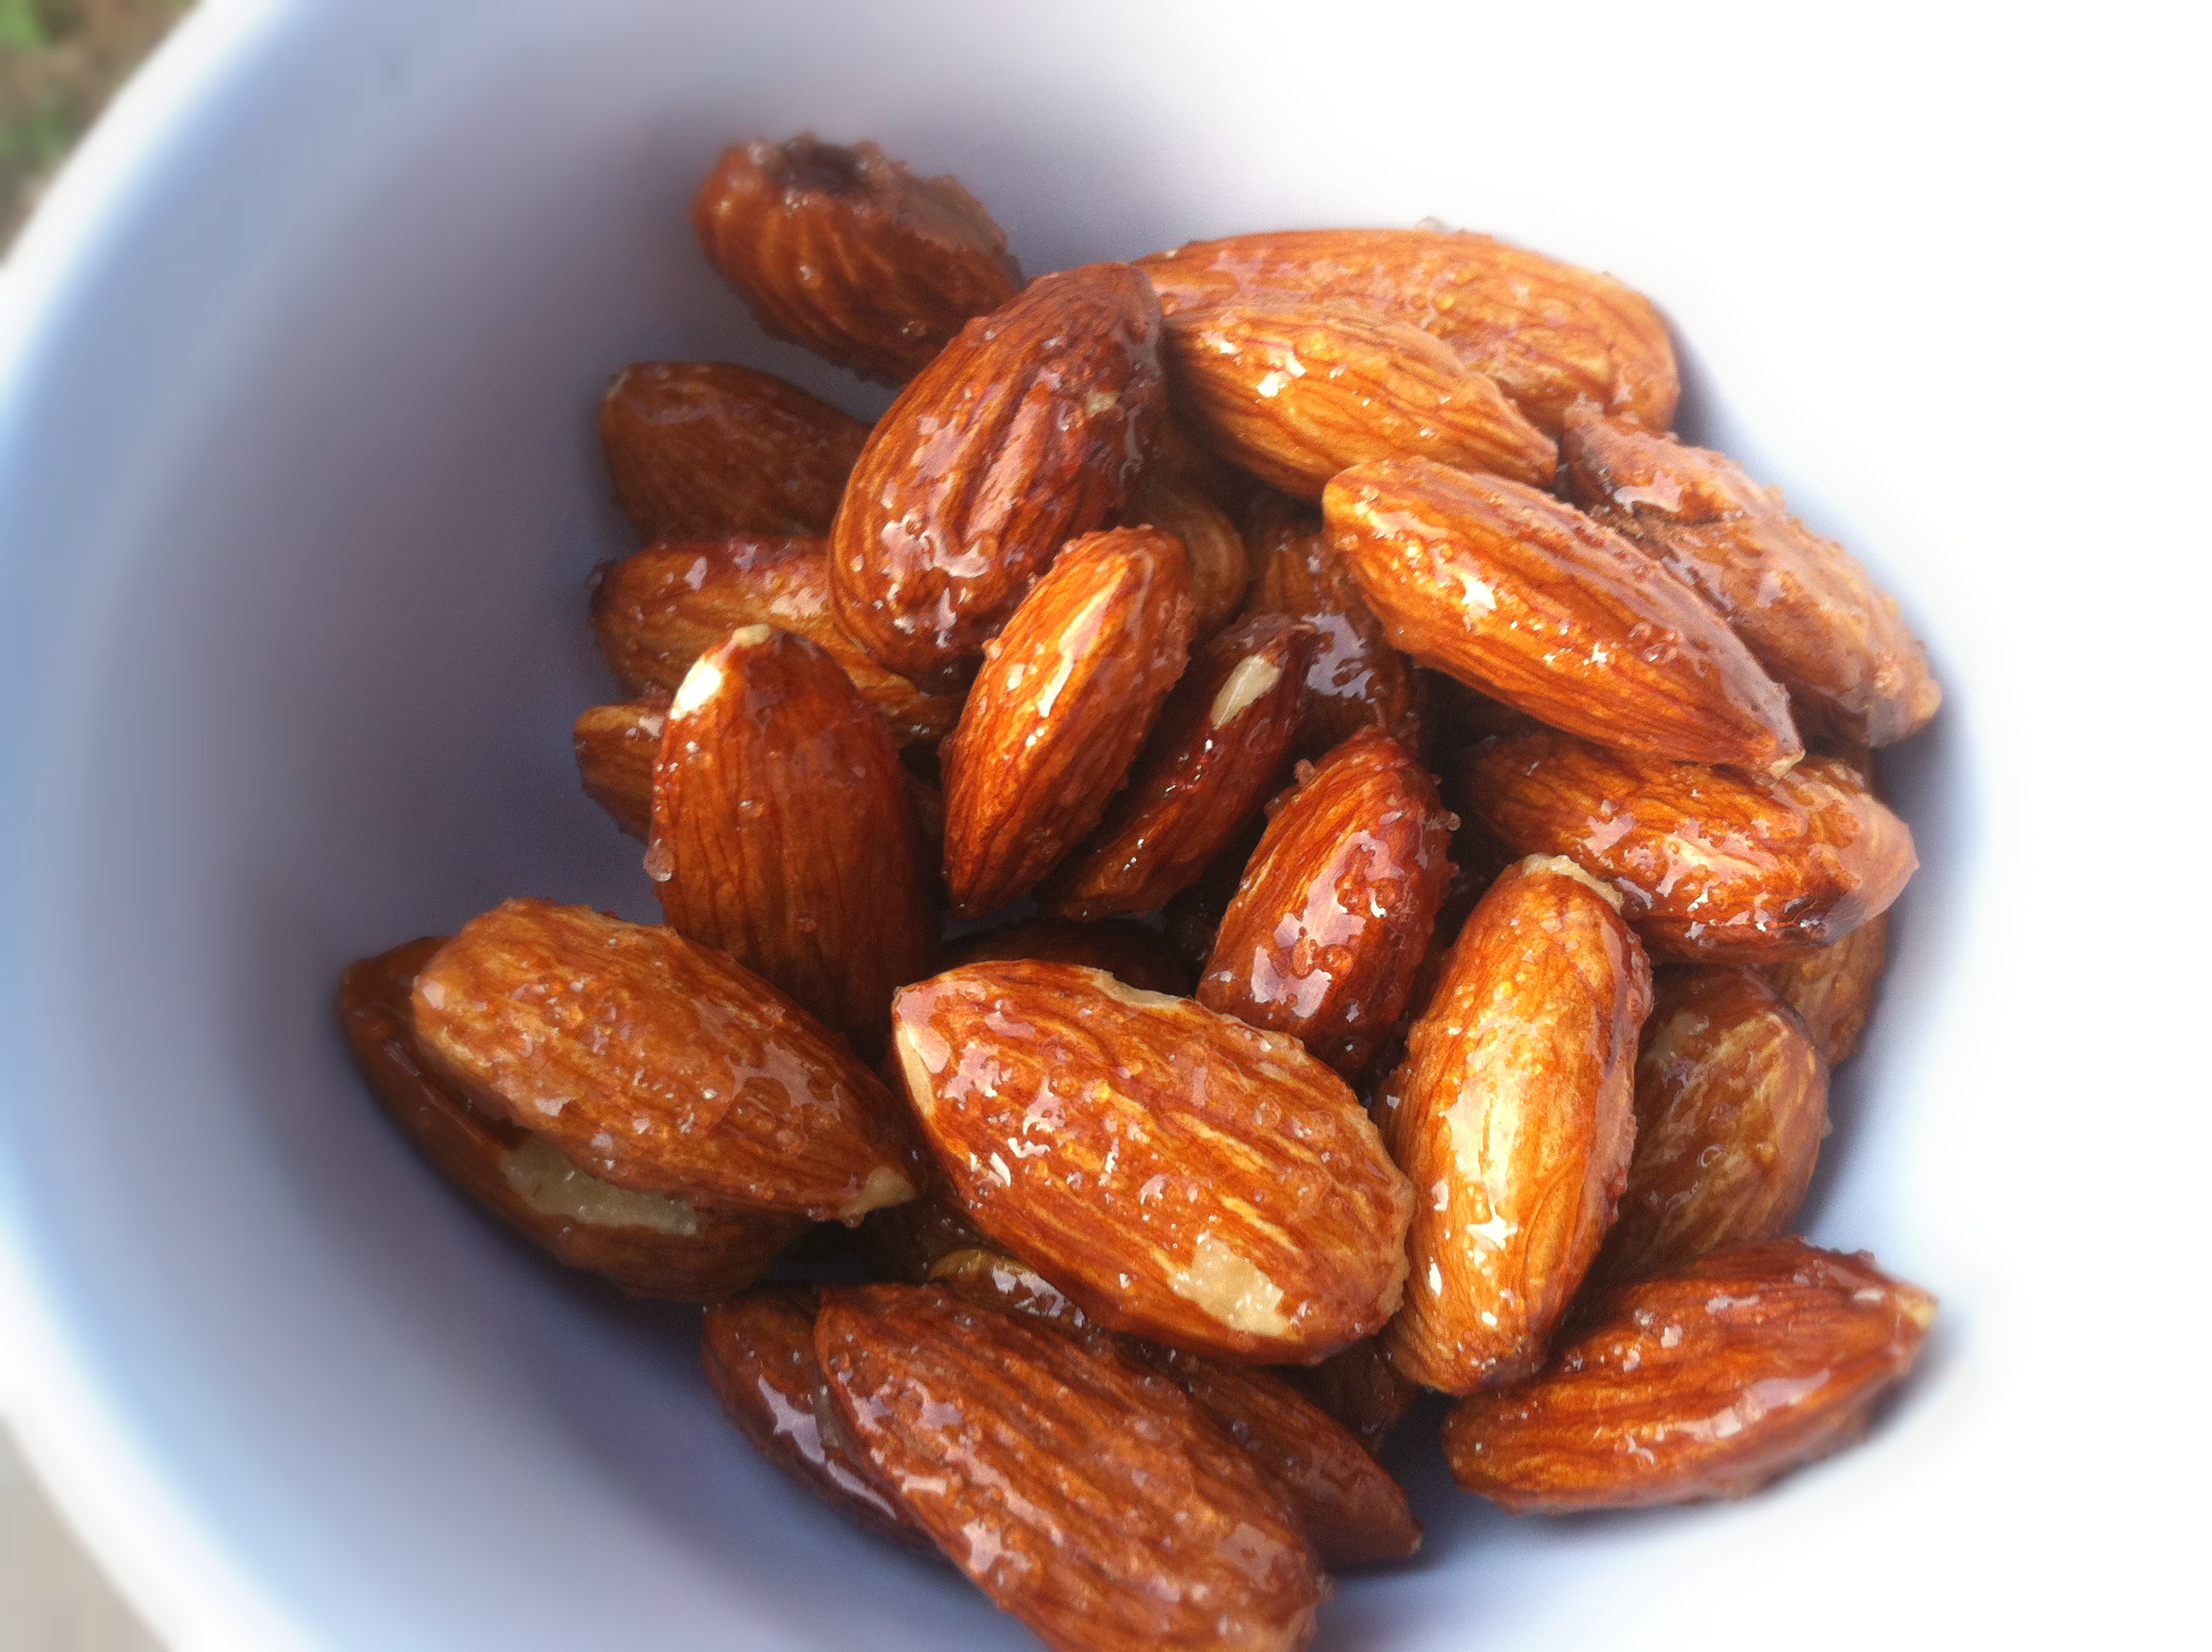 Honey and almonds